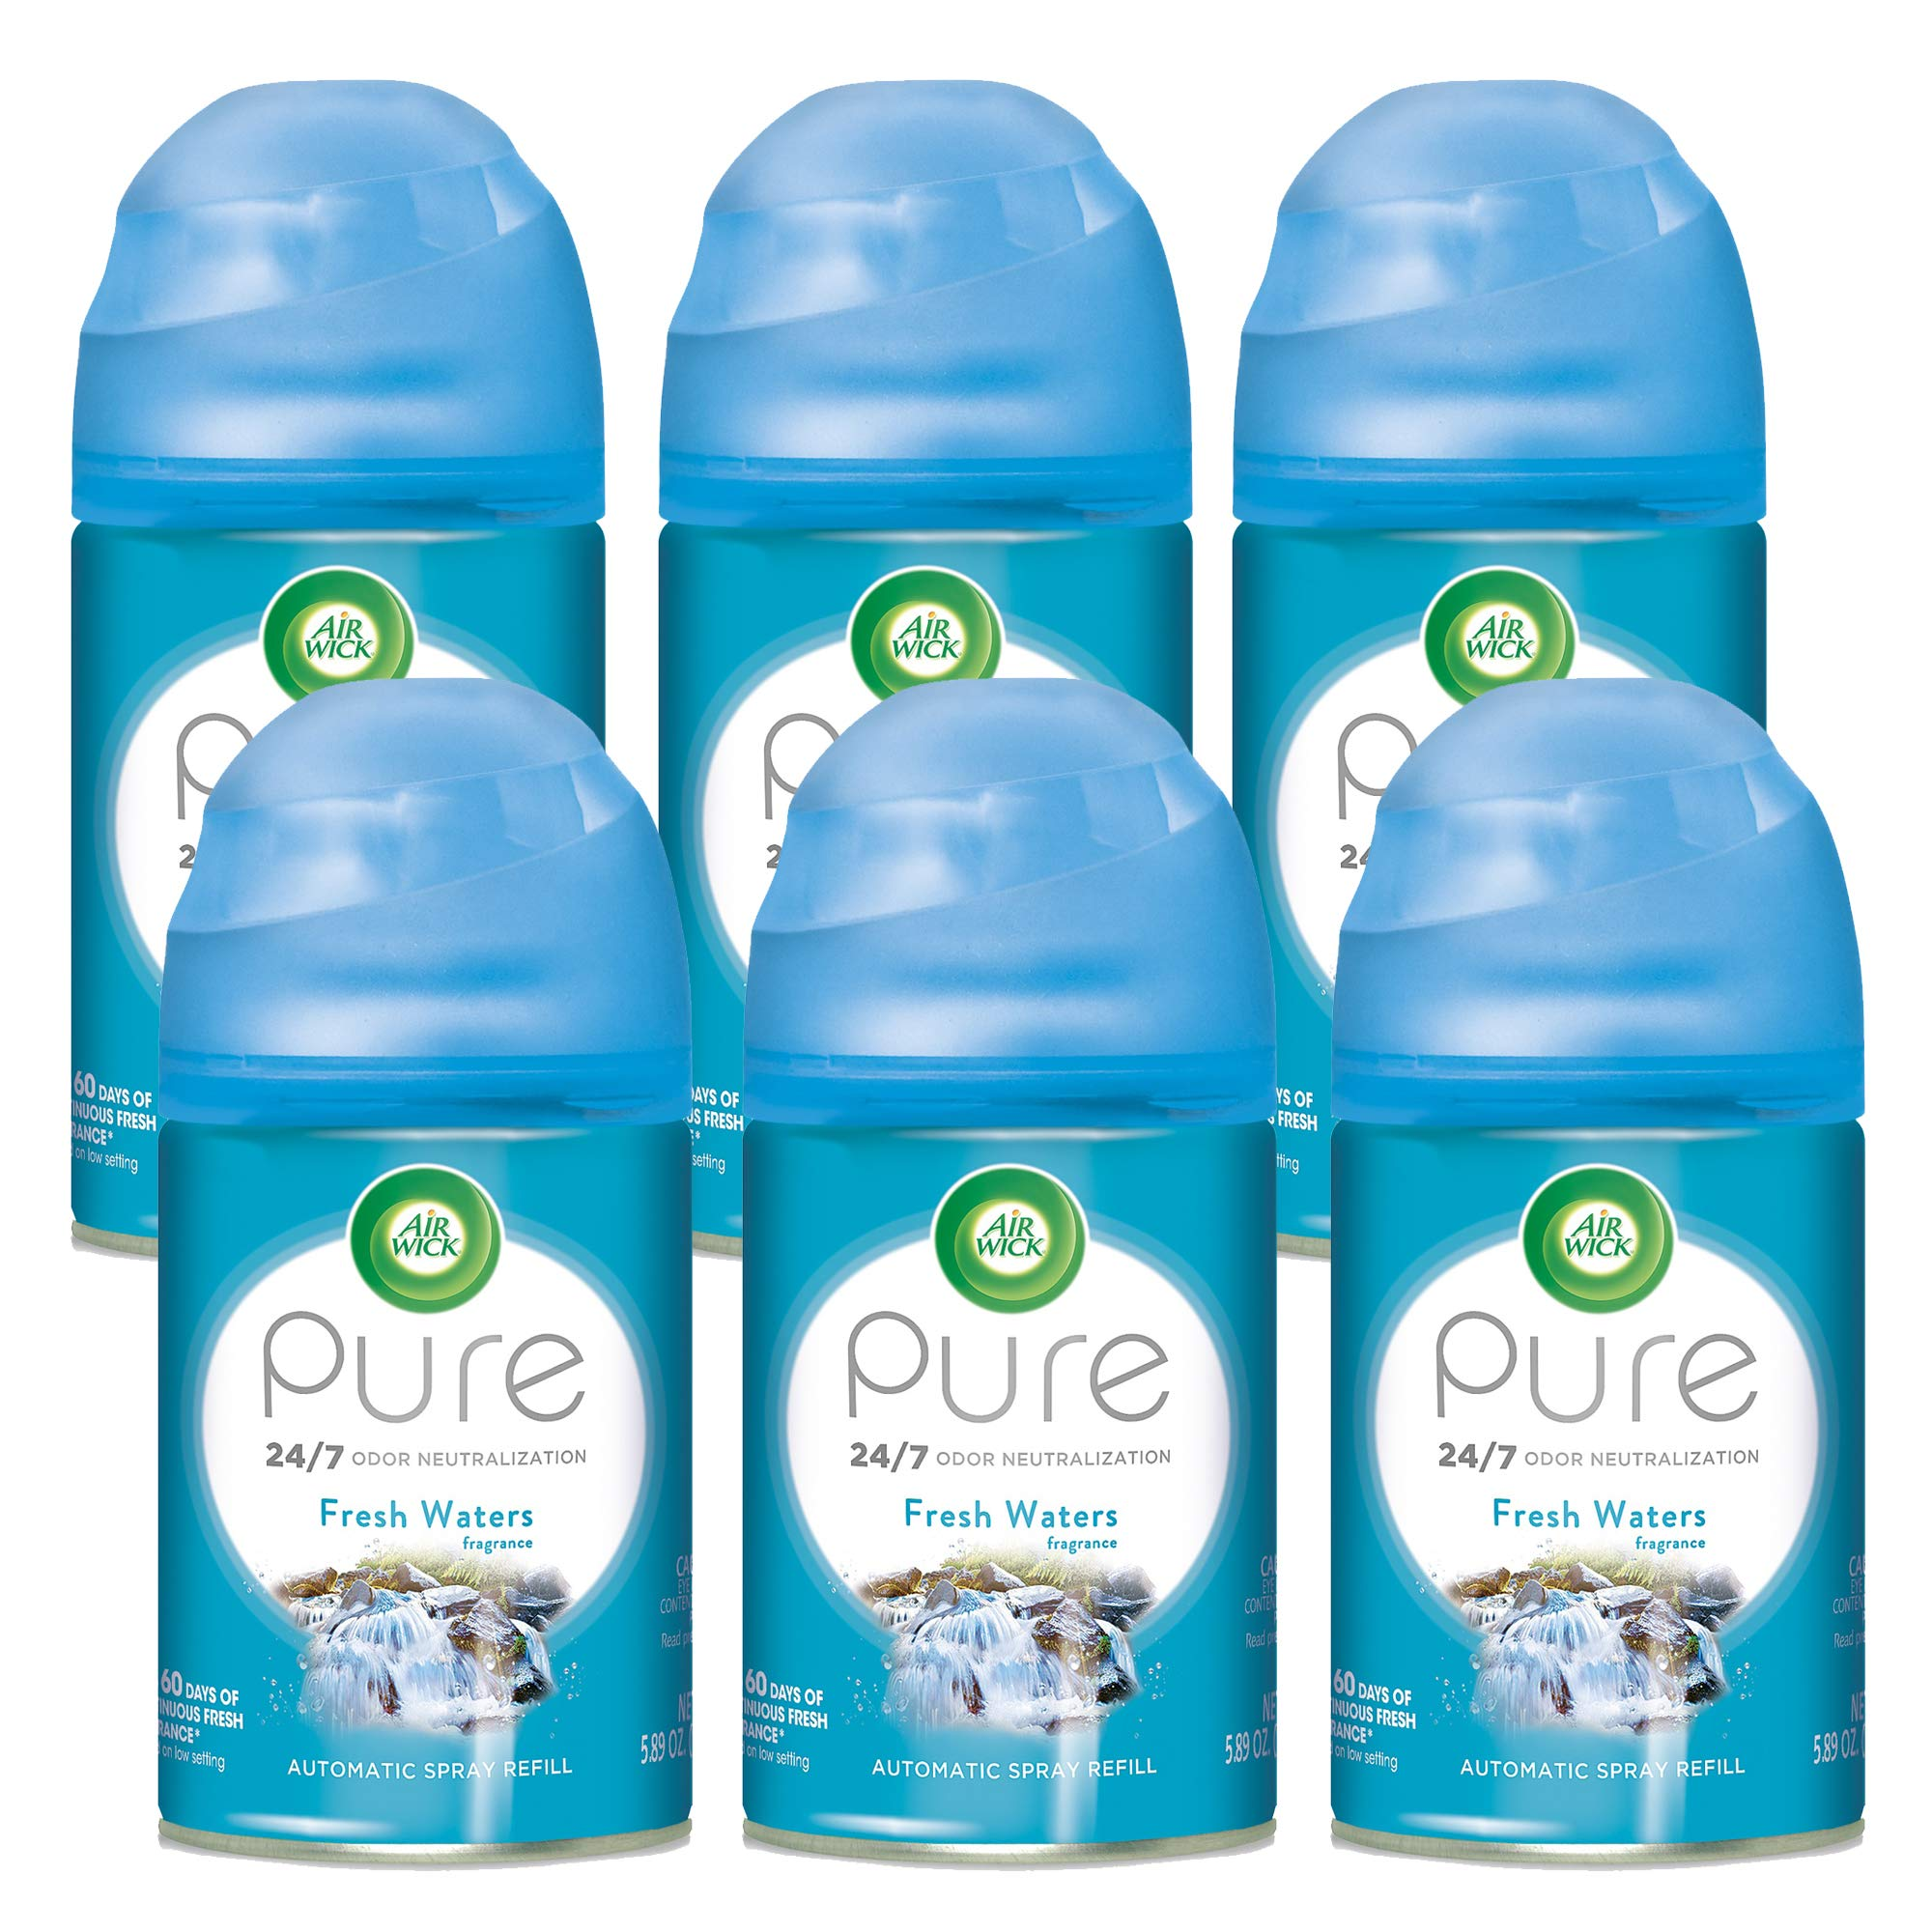 Air Wick Pure Freshmatic 6 Refills Automatic Spray, Fresh Waters, 6ct, Air Freshener, Essential Oil, Odor Neutralization, Packaging May Vary by Air Wick